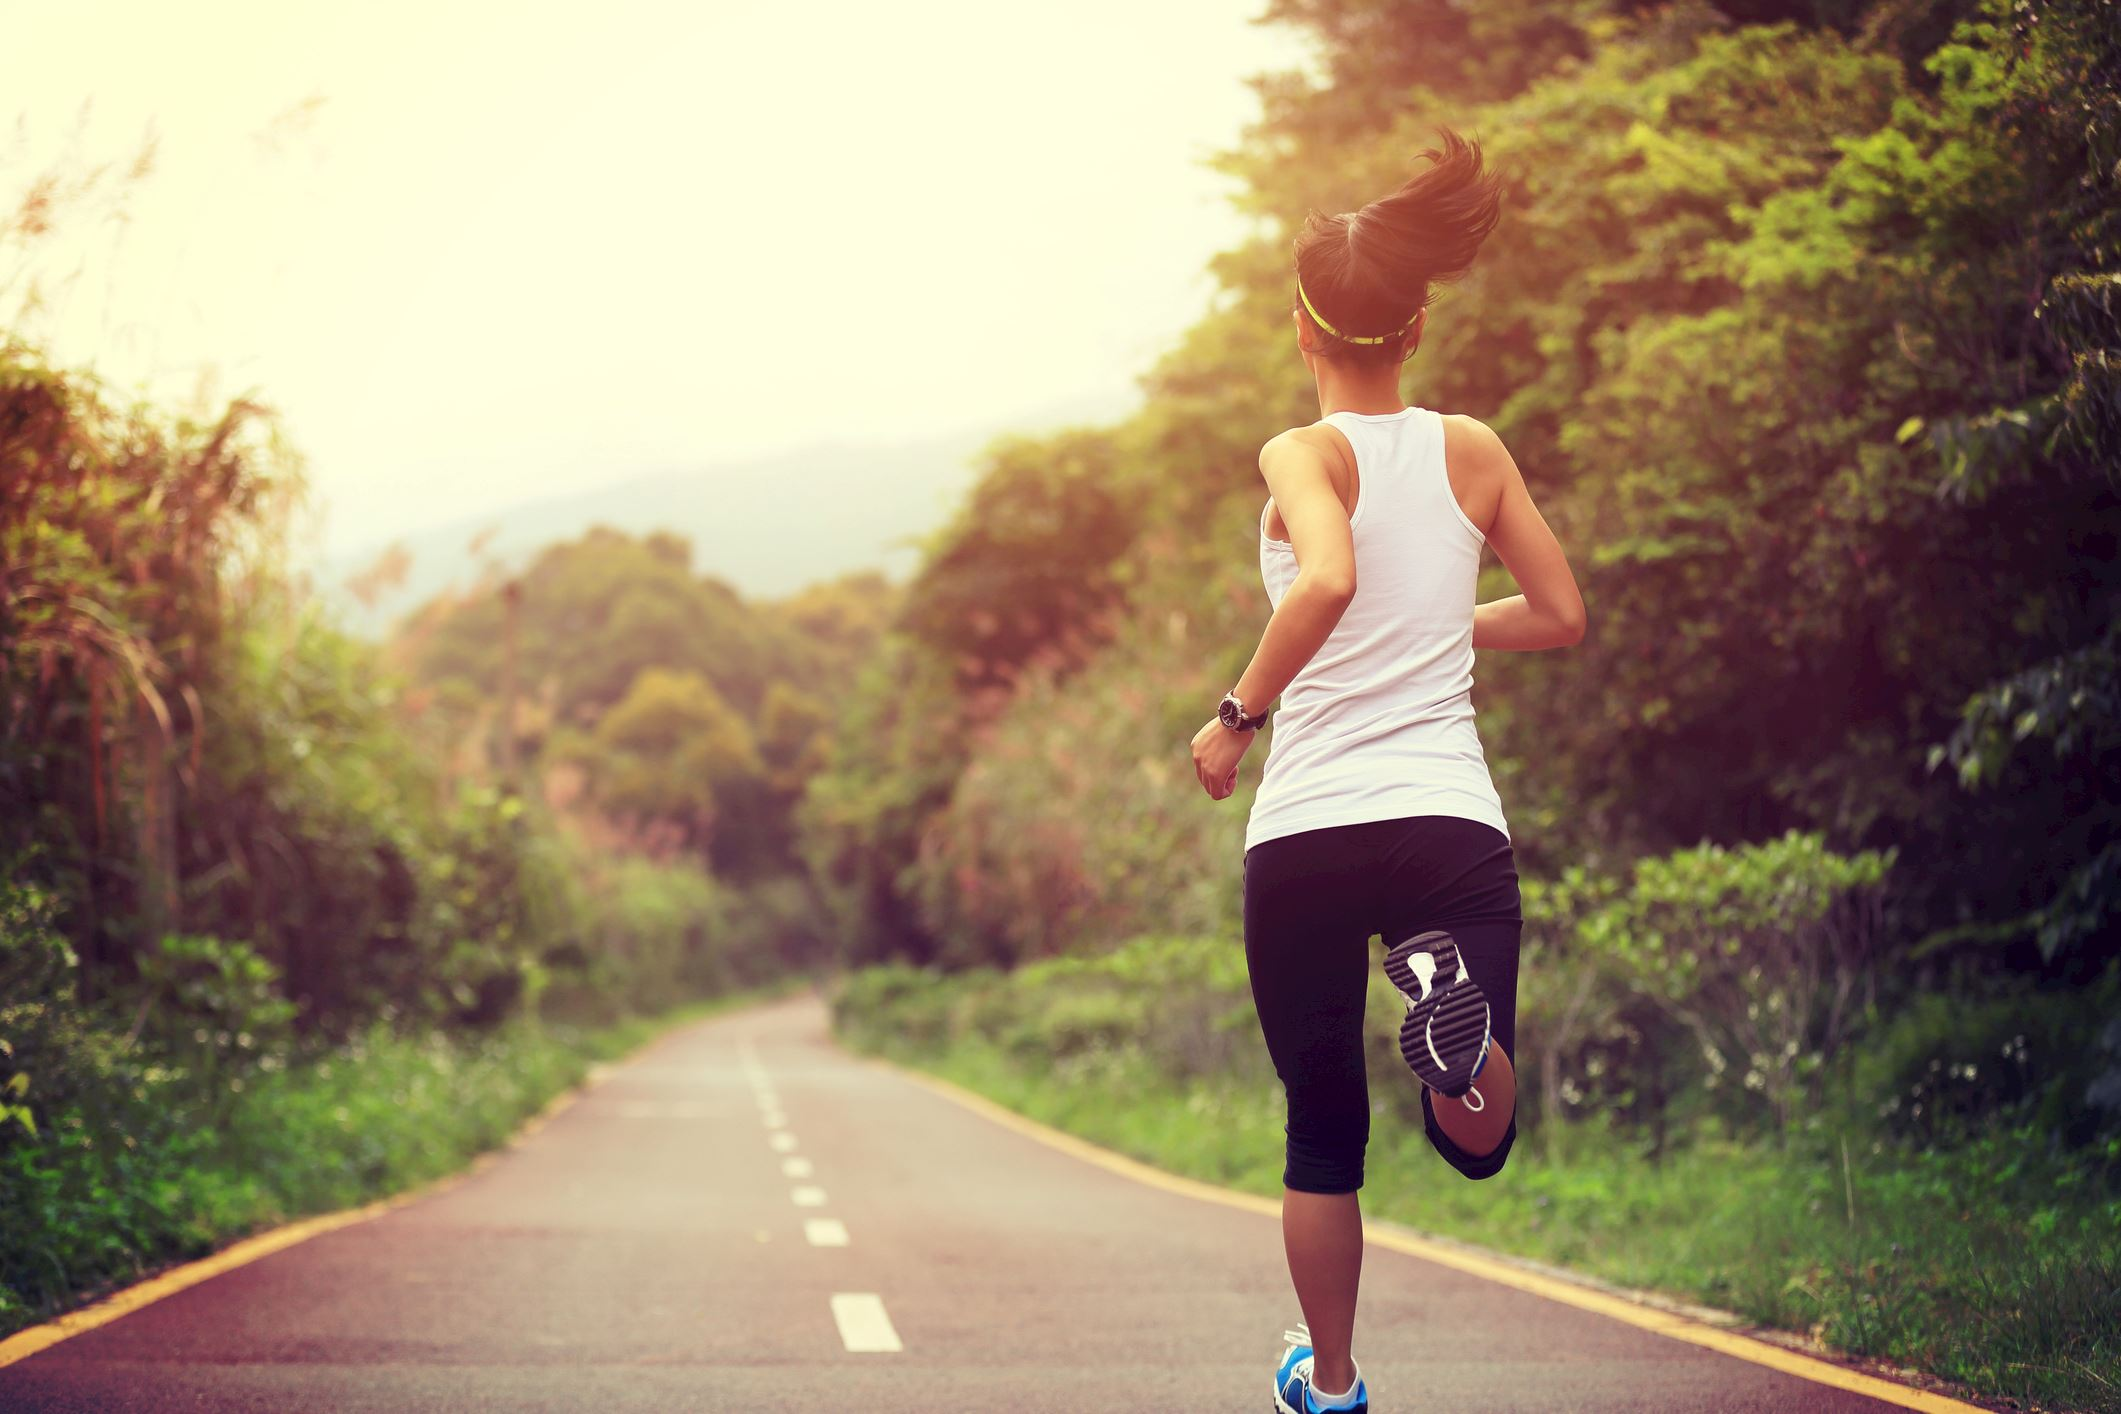 How to Keep a Positive Mindset During Long Distance Runs